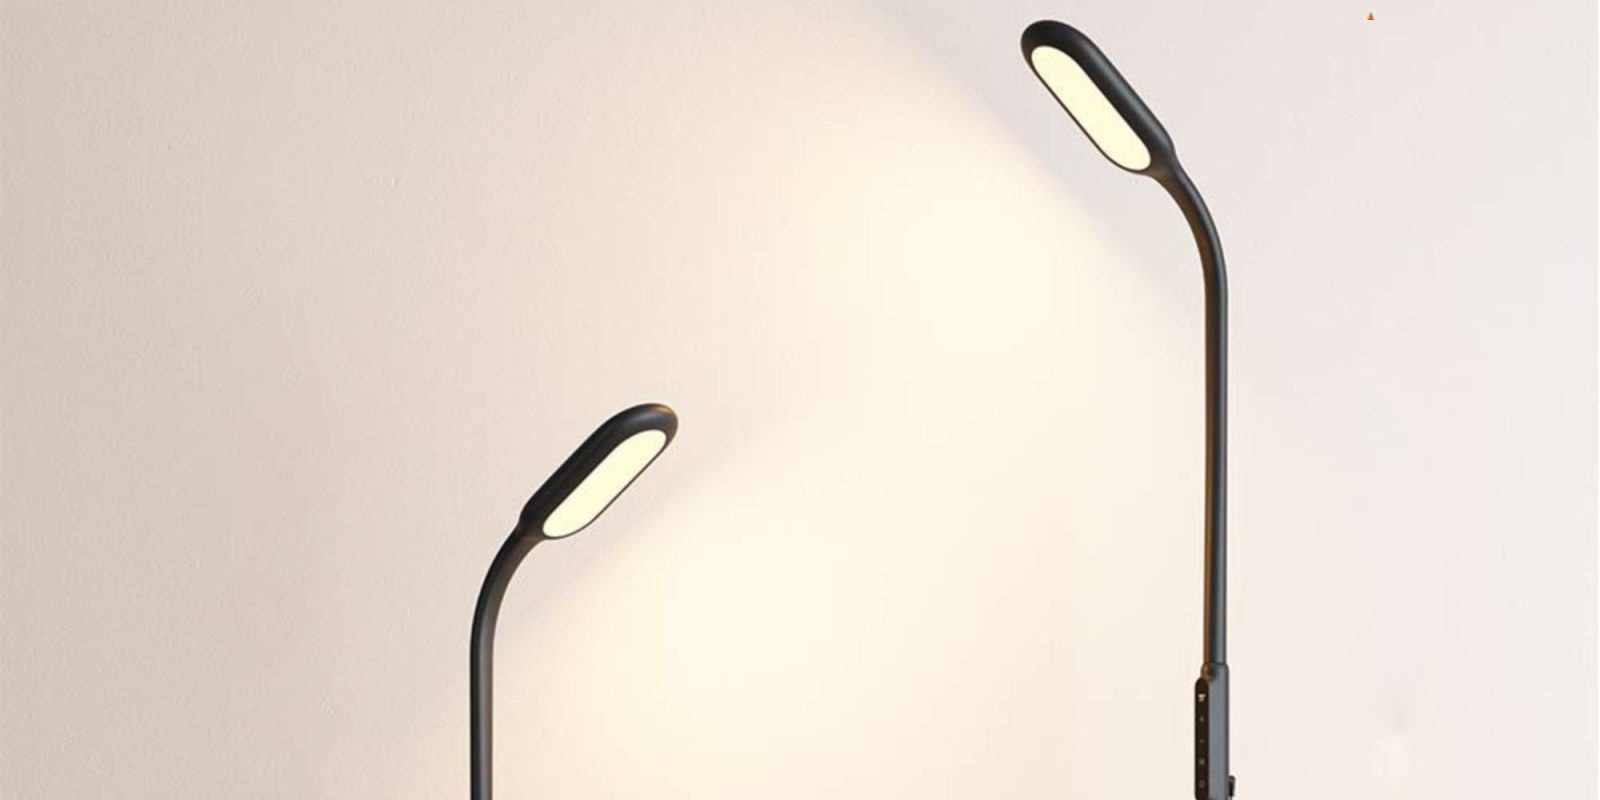 Save 40% on the TaoTronics 12W dimmable LED gooseneck floor lamp at $30